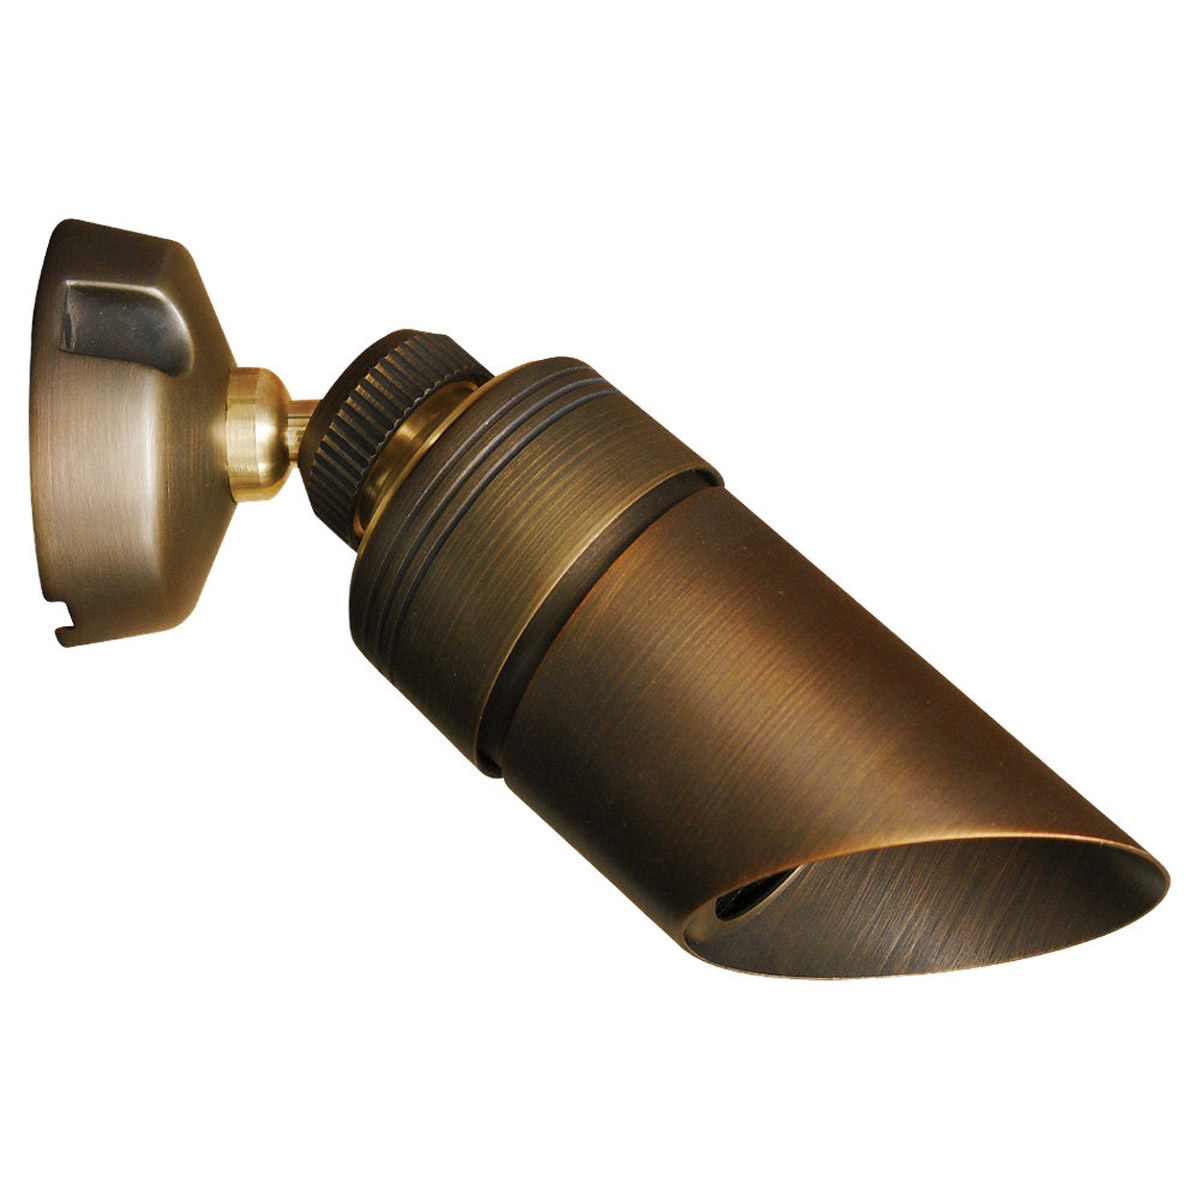 Sea Gull Lighting Meridian 1 Light Landscape Light in Weathered Brass 91120-147 photo